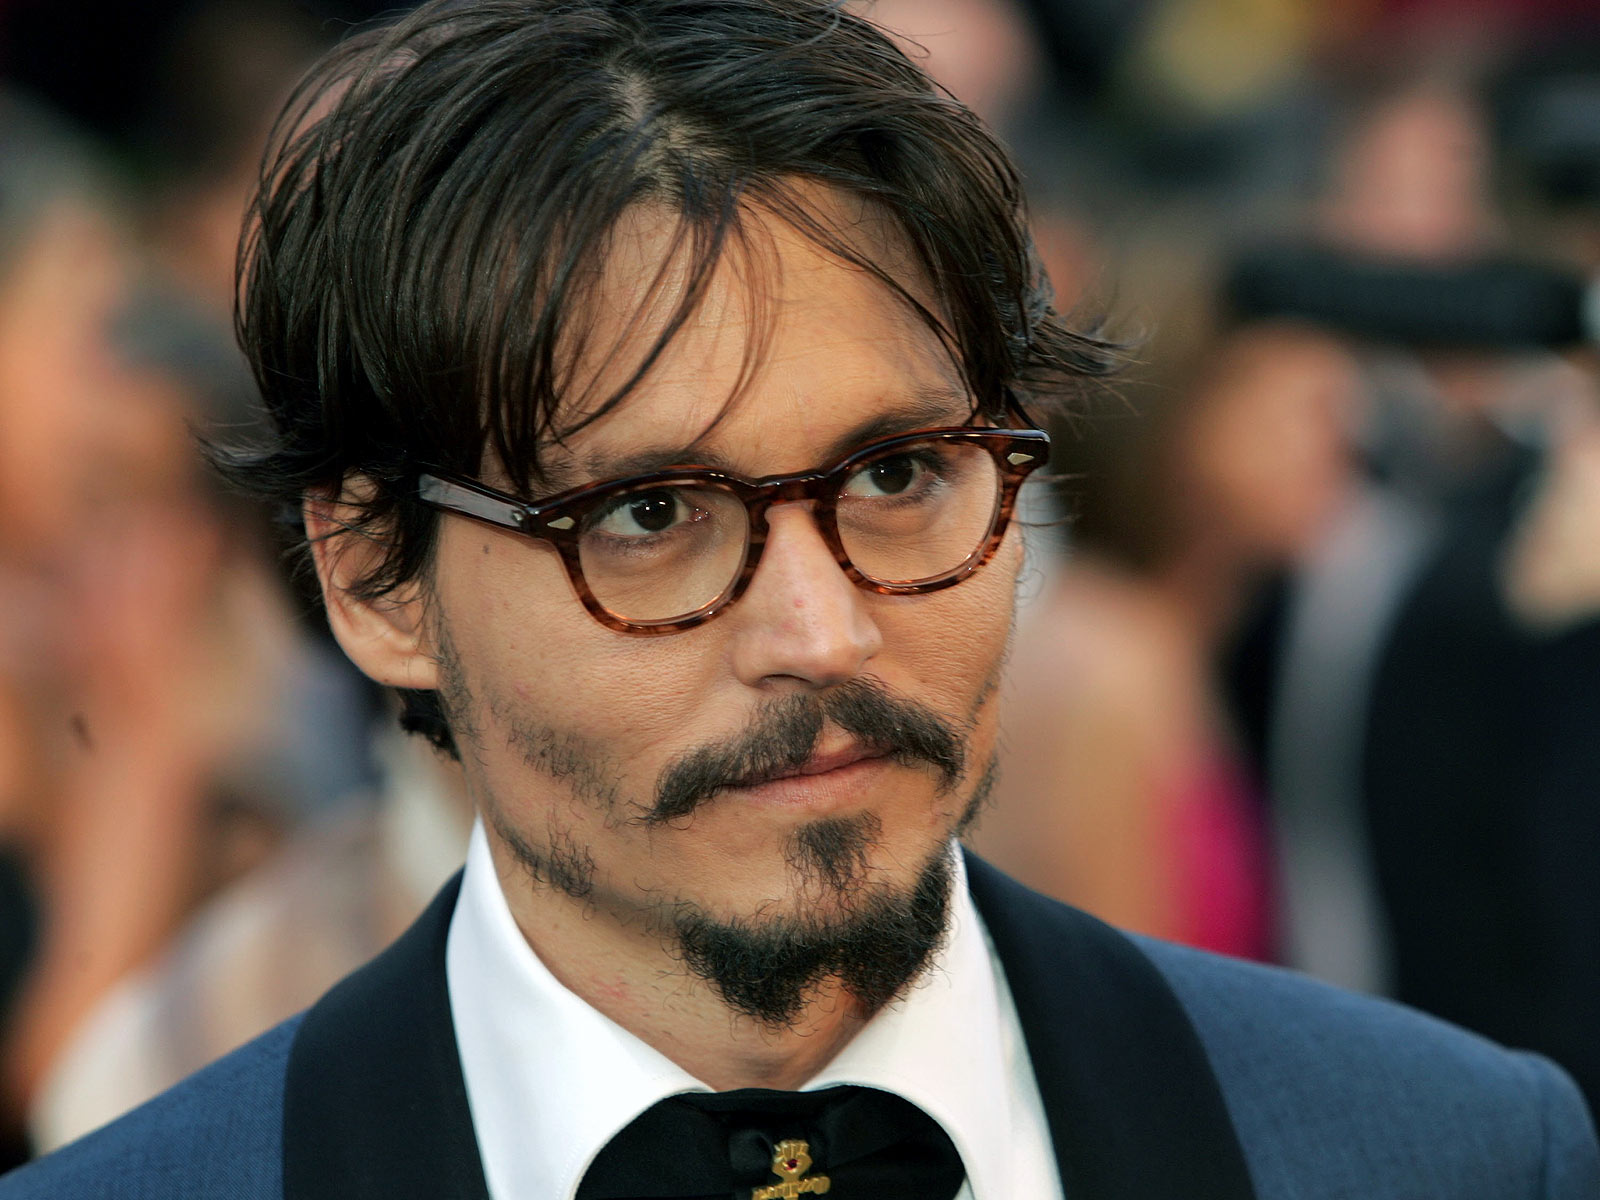 Johnny Depp: Biography of the Man, the Myth, and the Legend